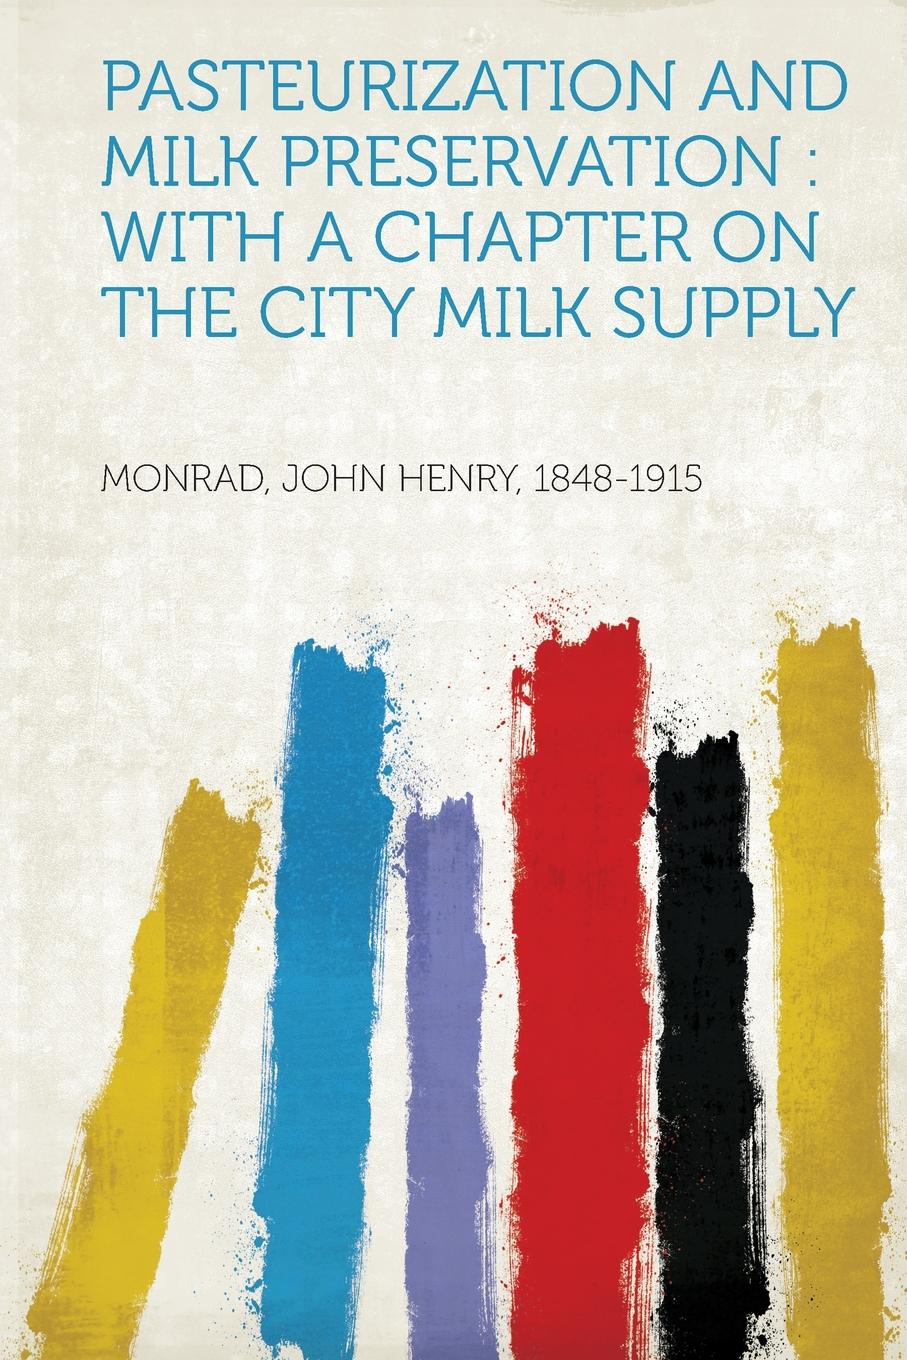 Monrad John Henry 1848-1915 Pasteurization and Milk Preservation. With a Chapter on the City Milk Supply raw milk quality